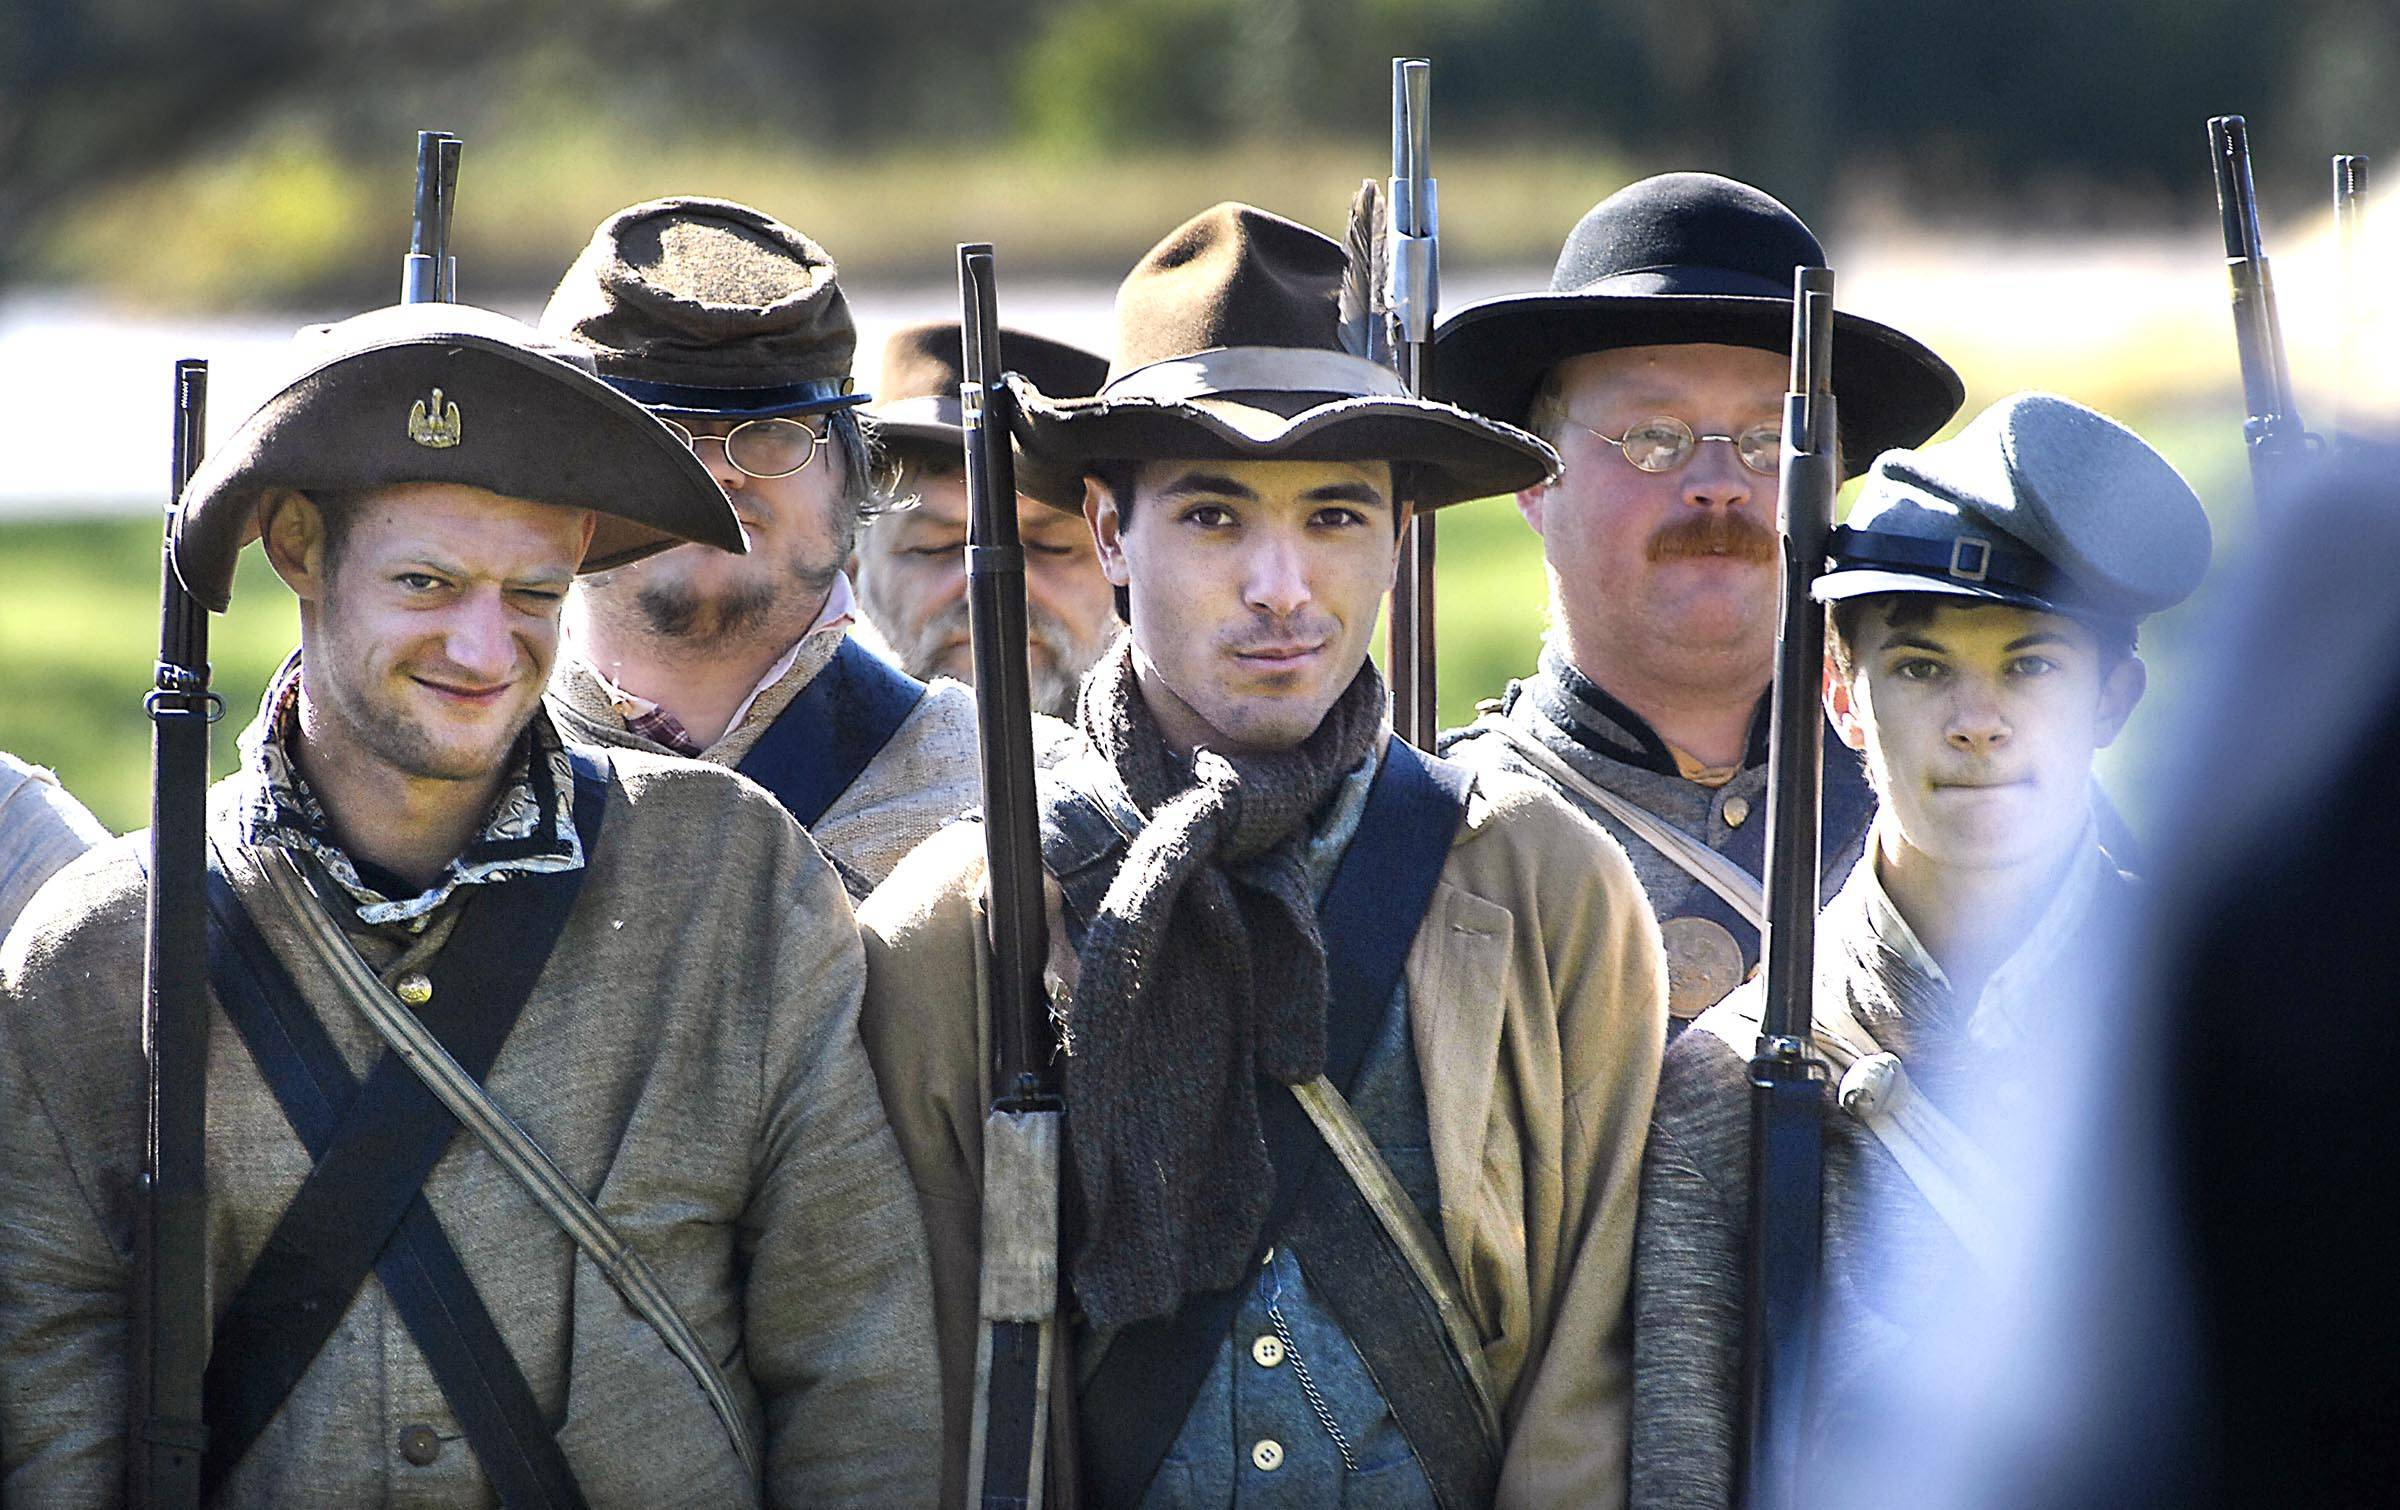 Confederate re-enactors stand in formation Sunday at a Civil War re-encampment at Cantigny Park in Wheaton.